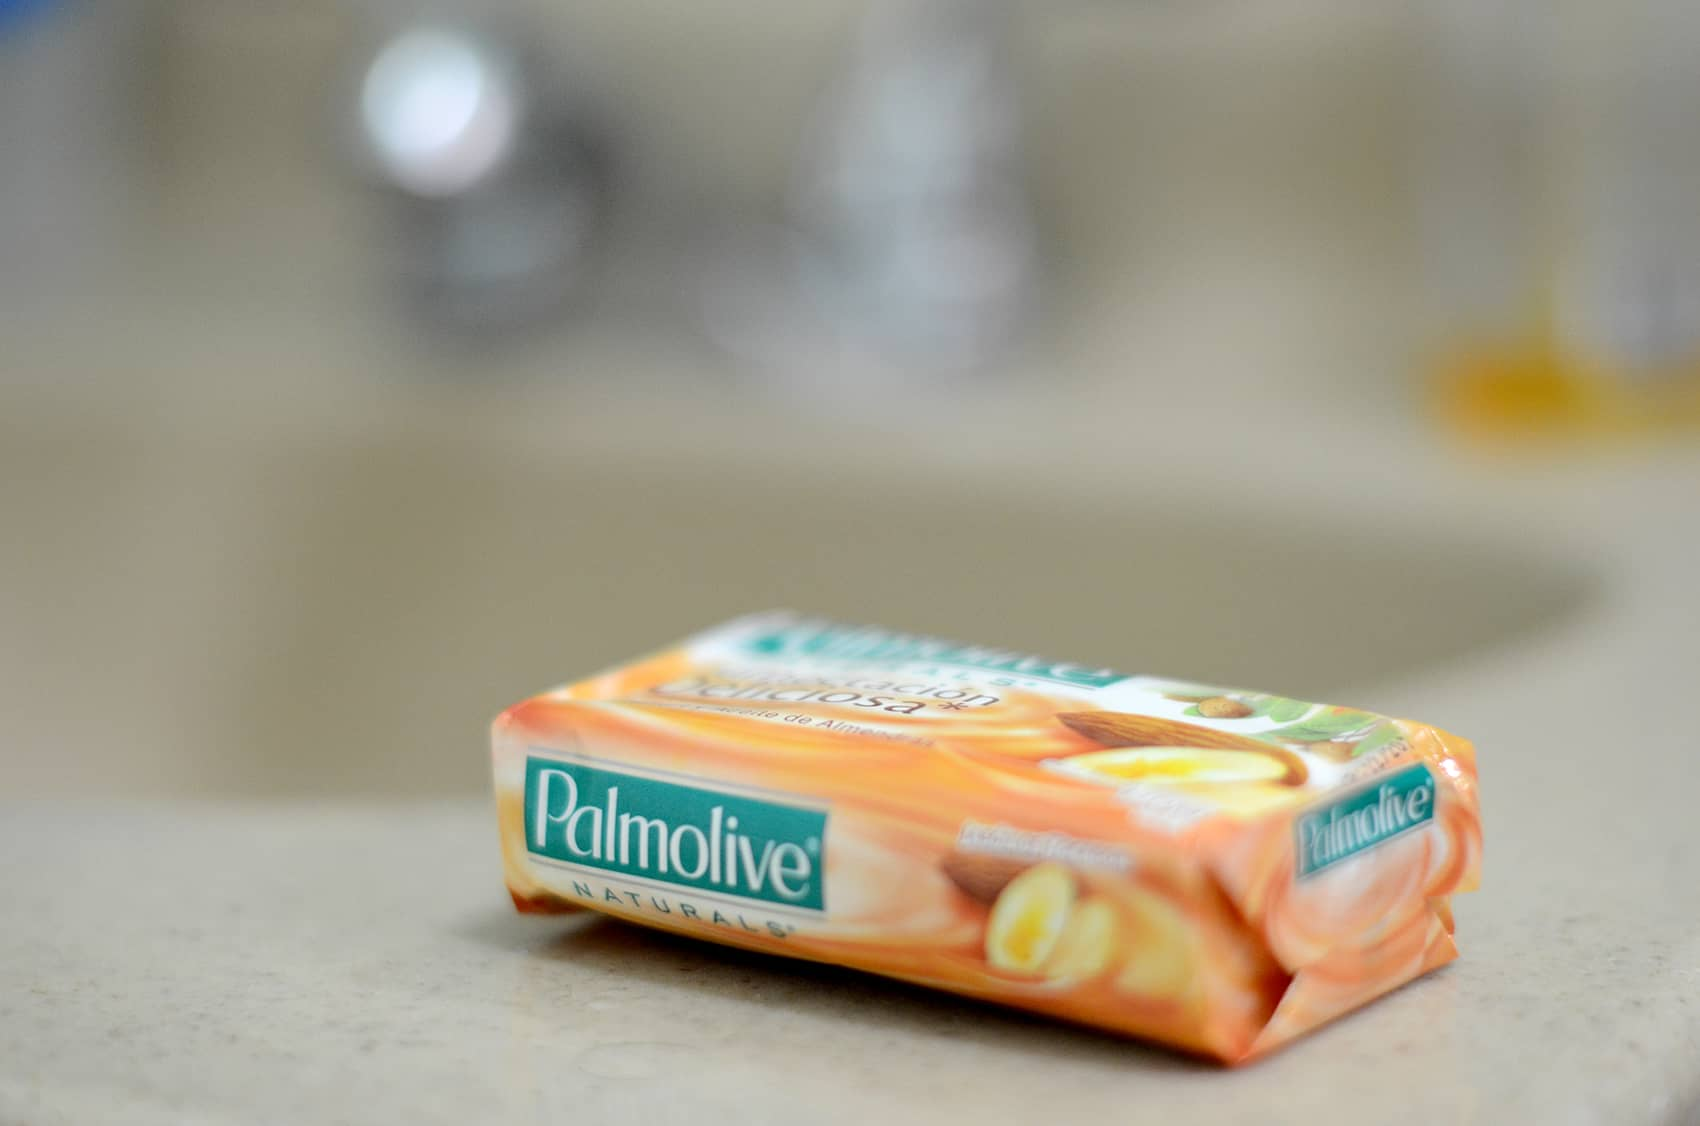 A bar of Palmolive soap.